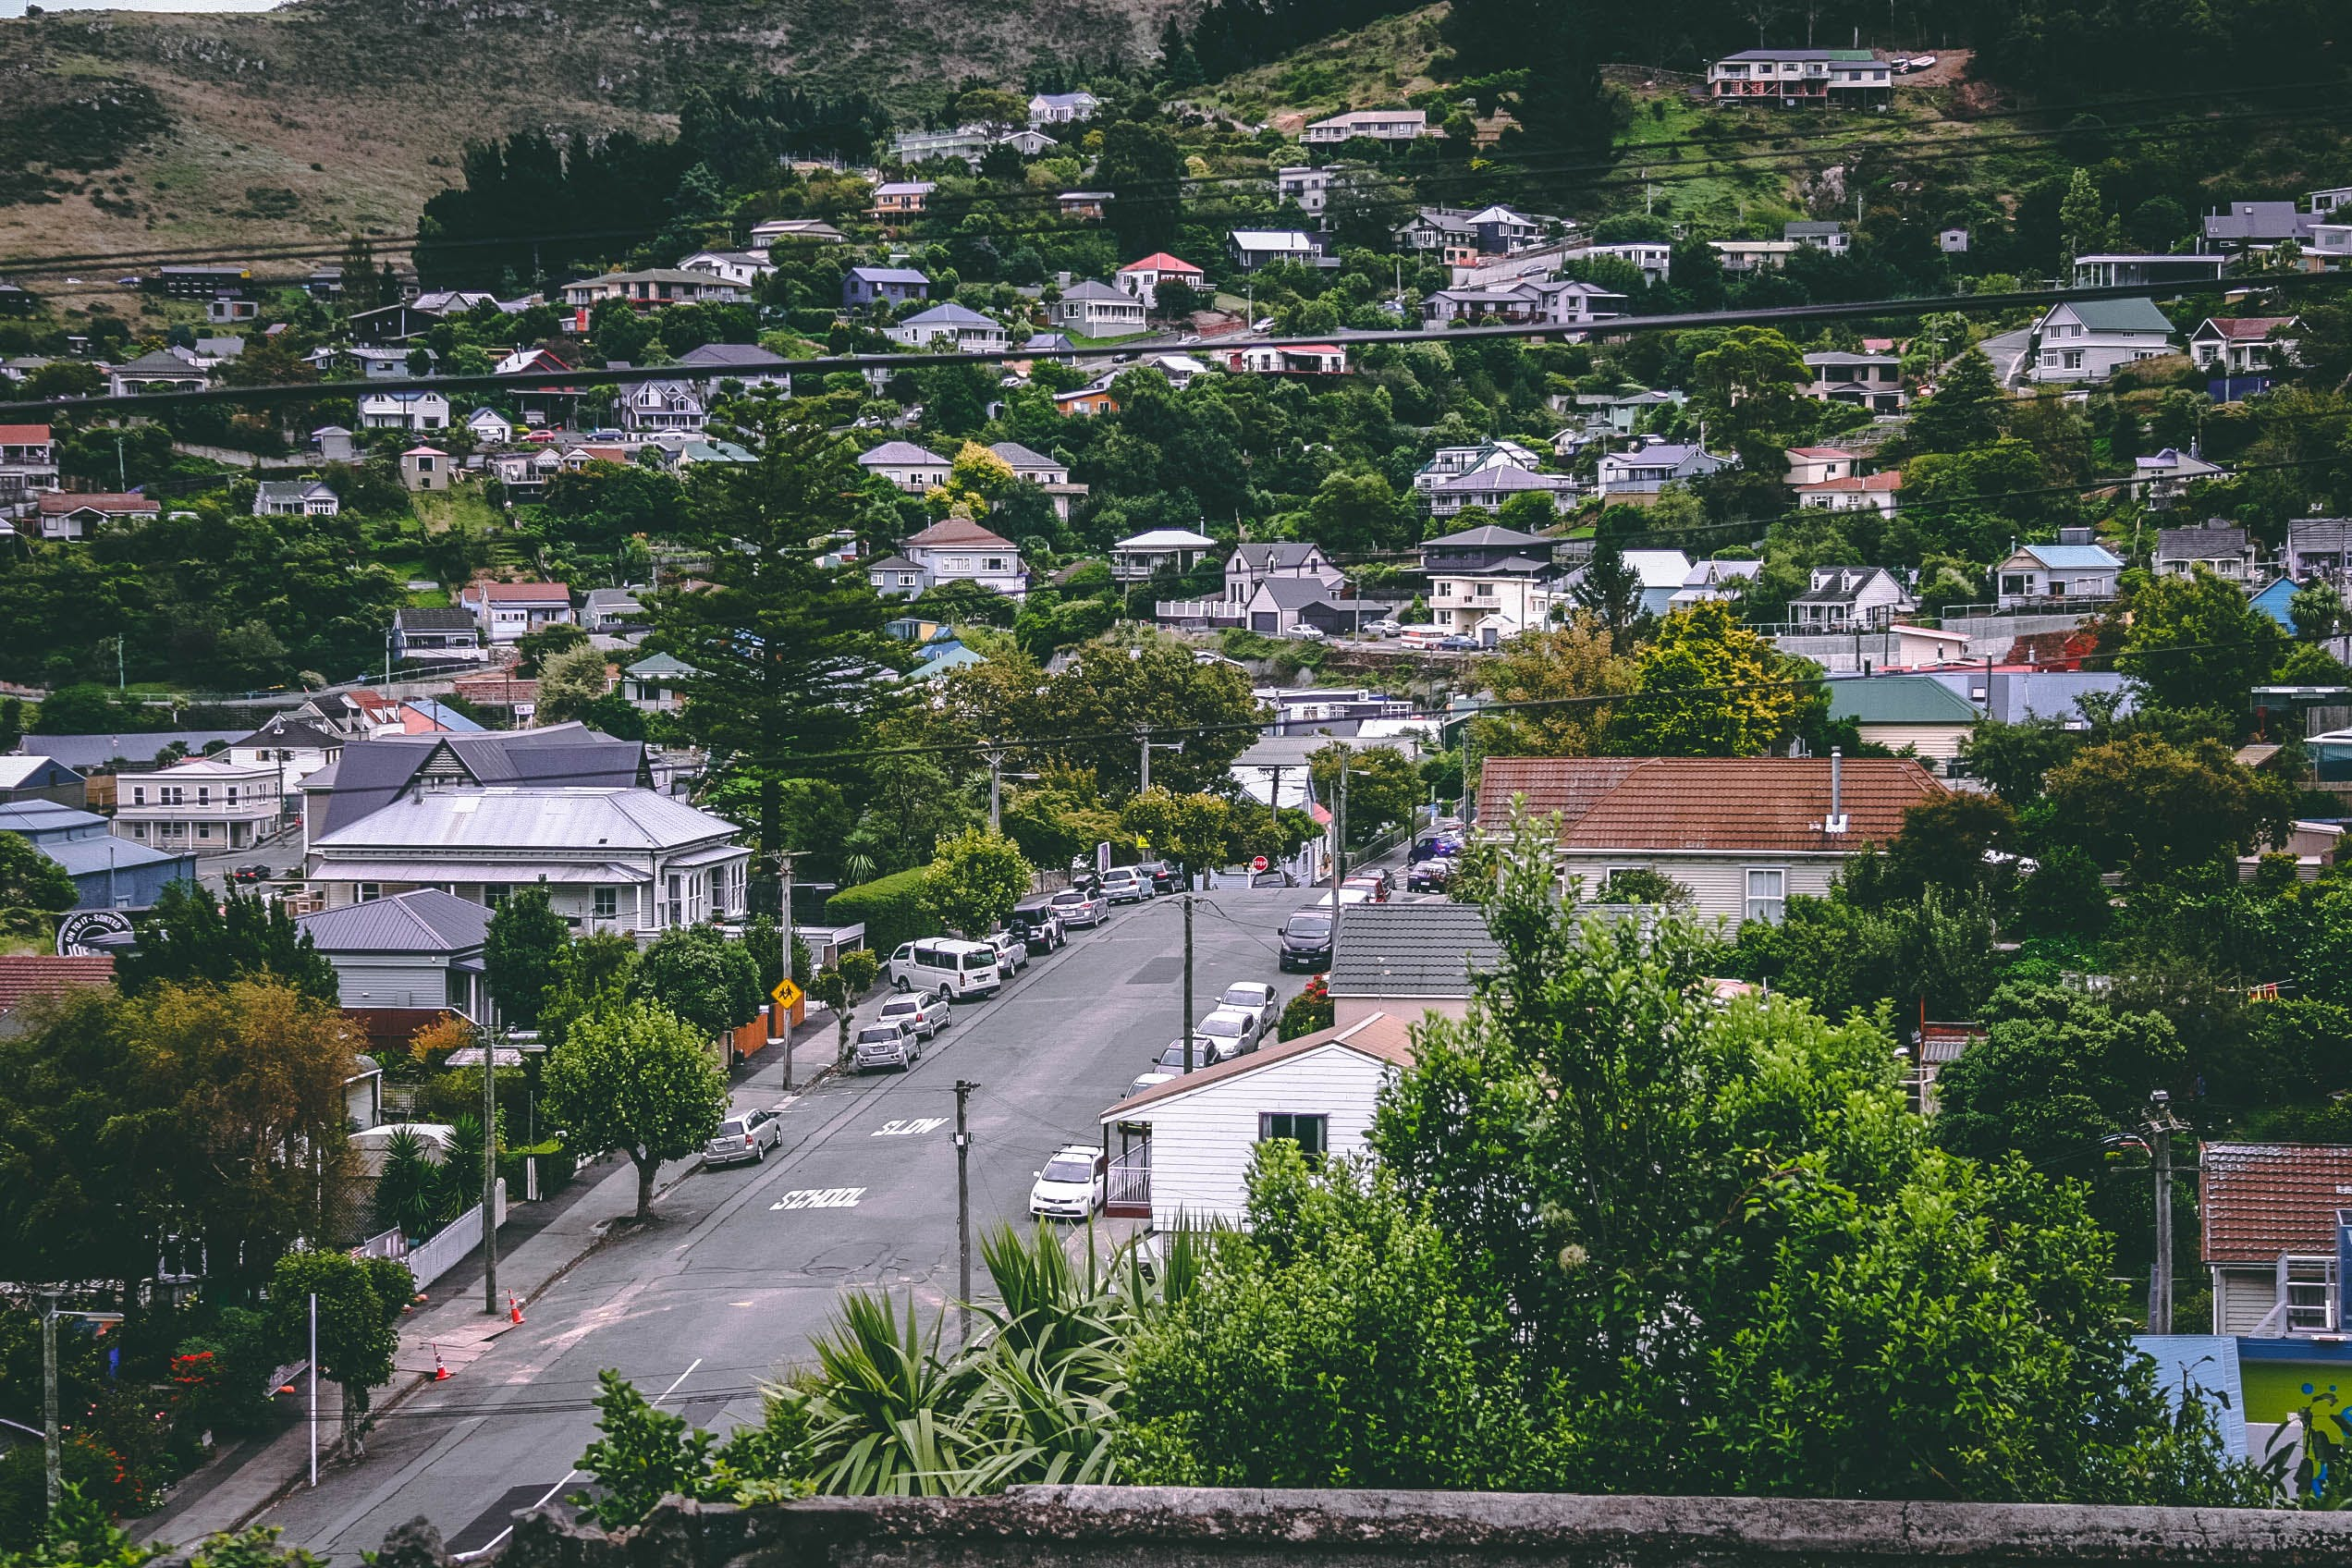 Birds Eye View Photography of Cars on Street Between Houses